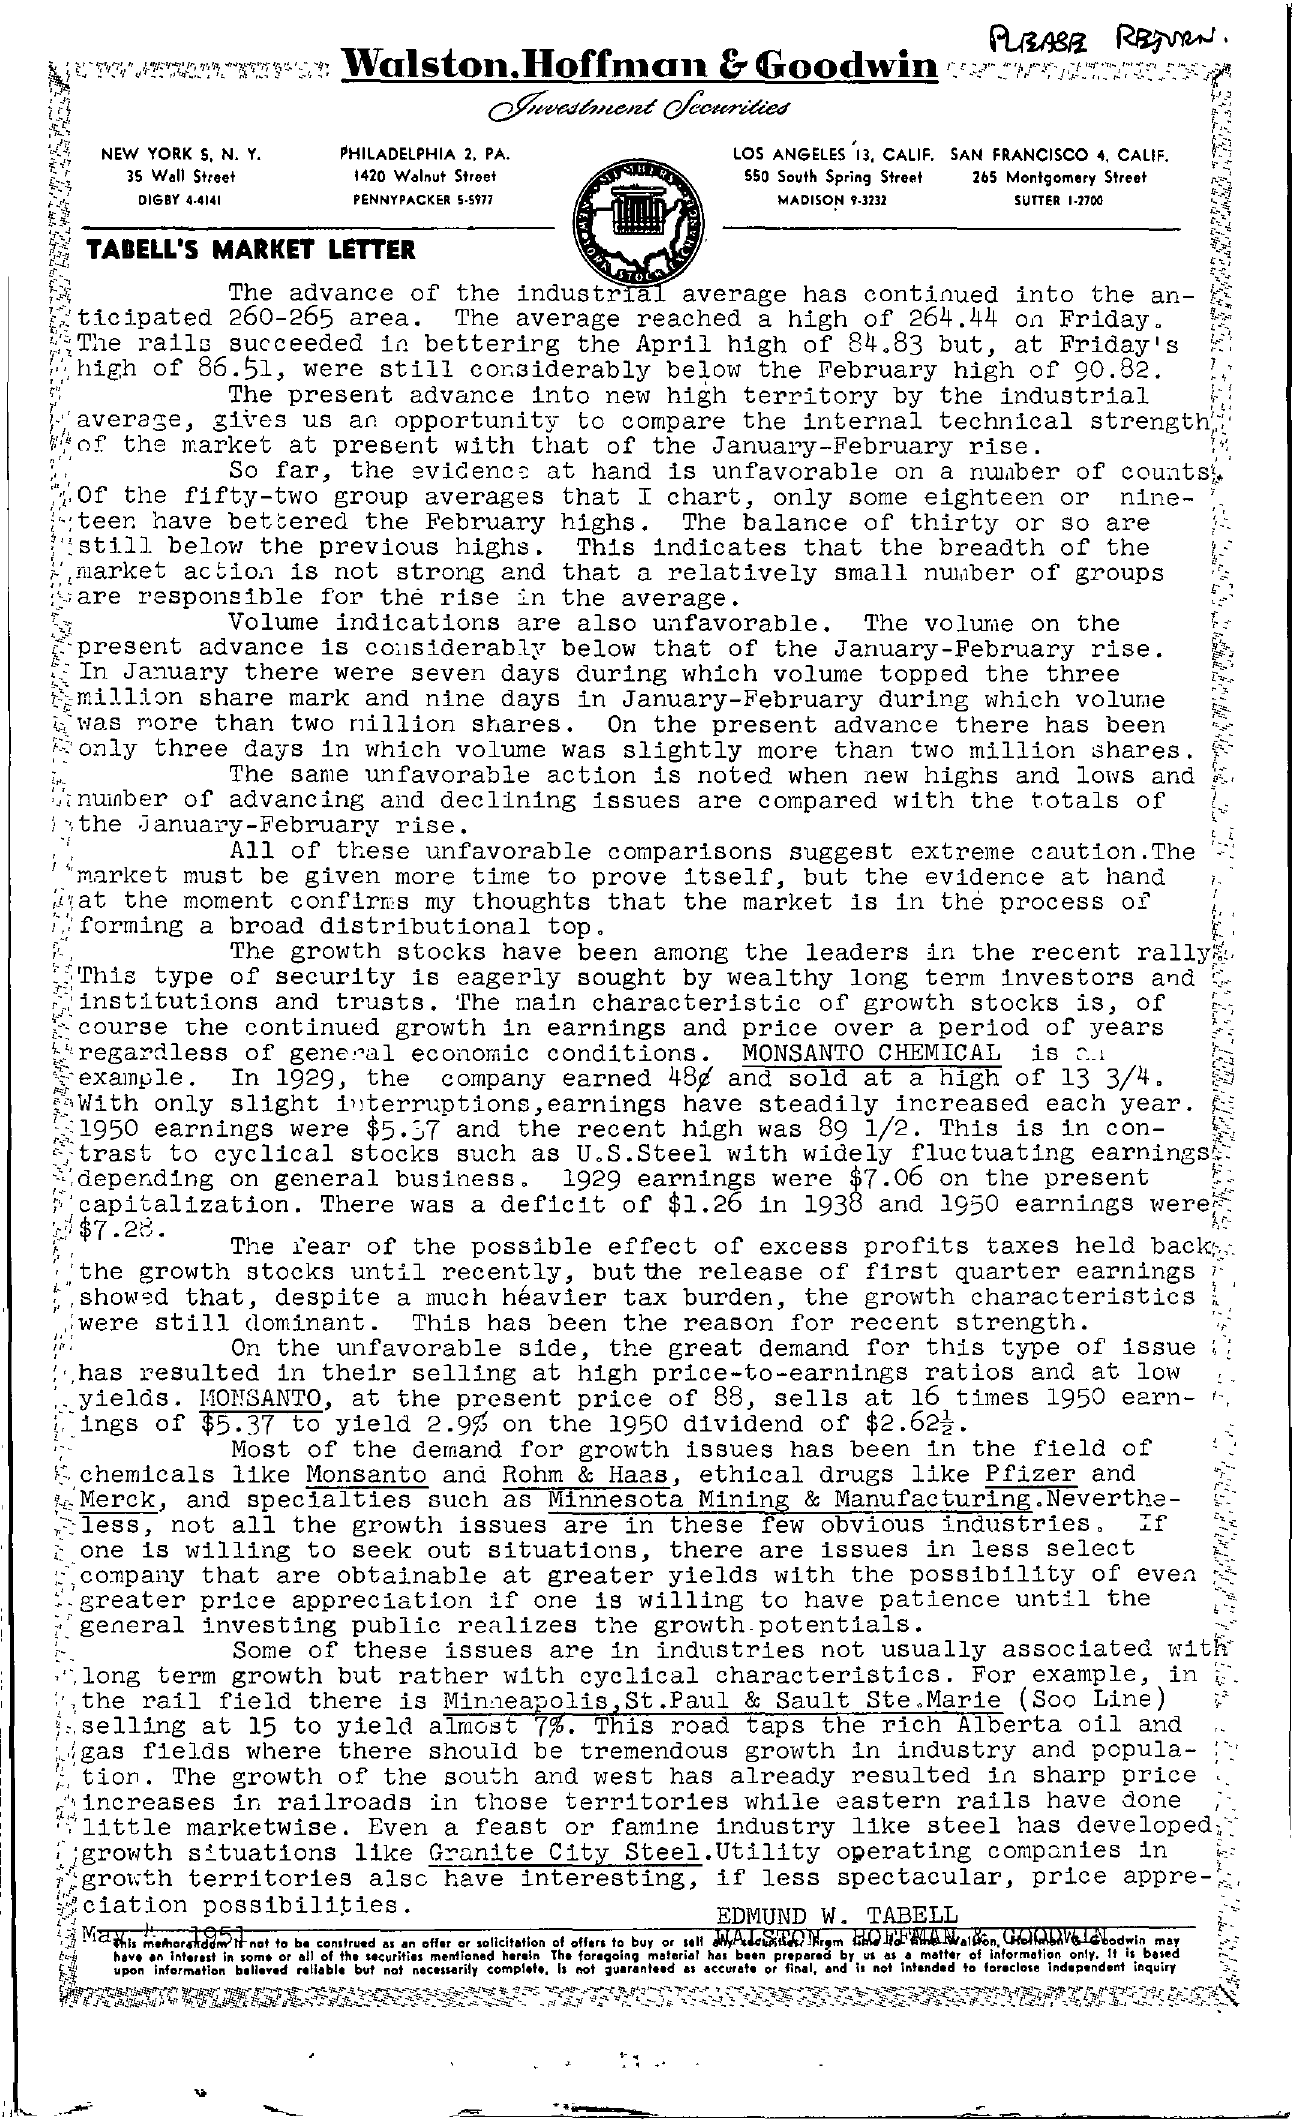 Tabell's Market Letter - May 04, 1951